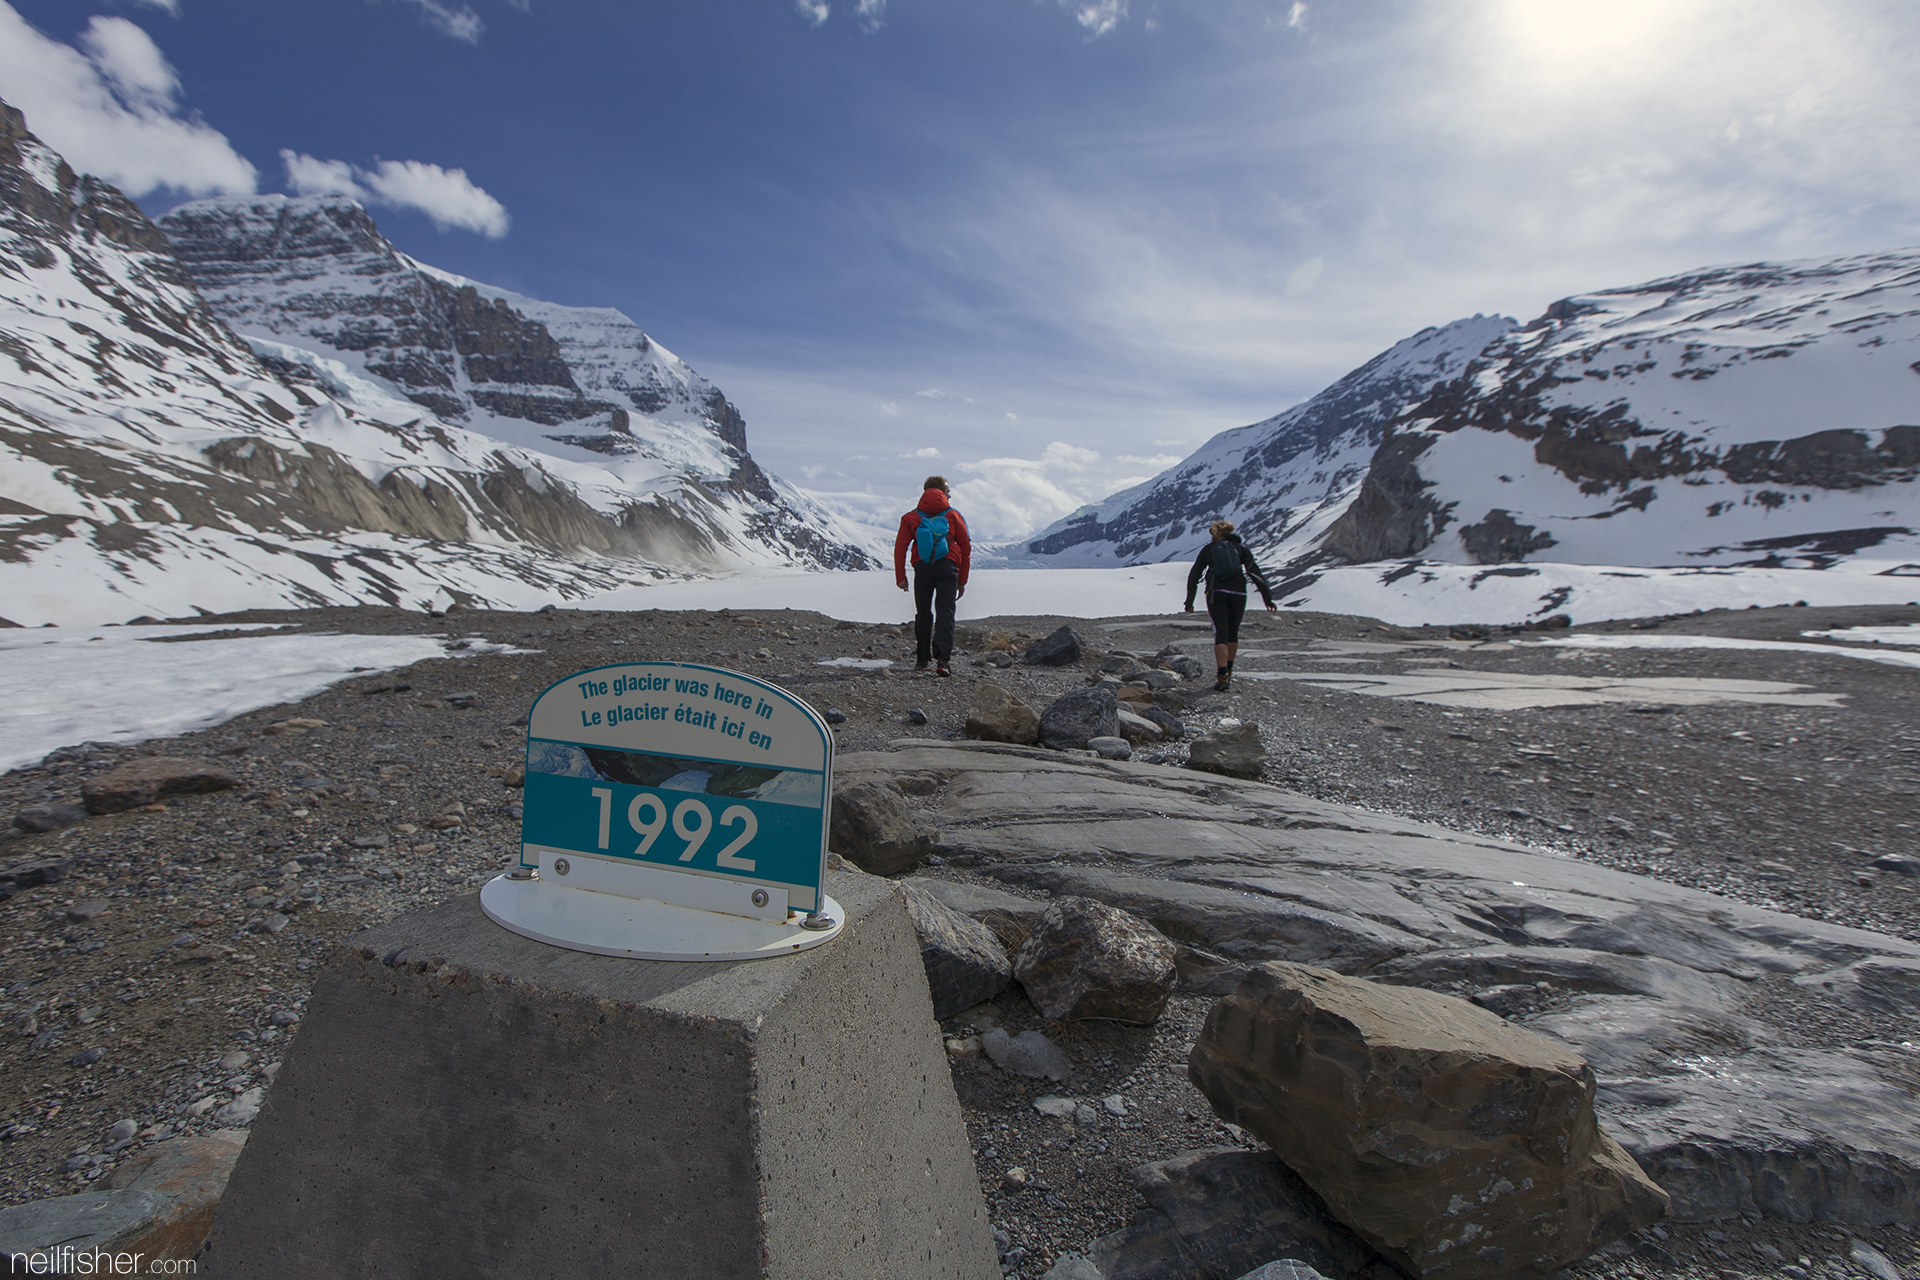 """The glacier was here in 1992"""" EXIF 1/200sec f/8.0 ISO100 16mm"""